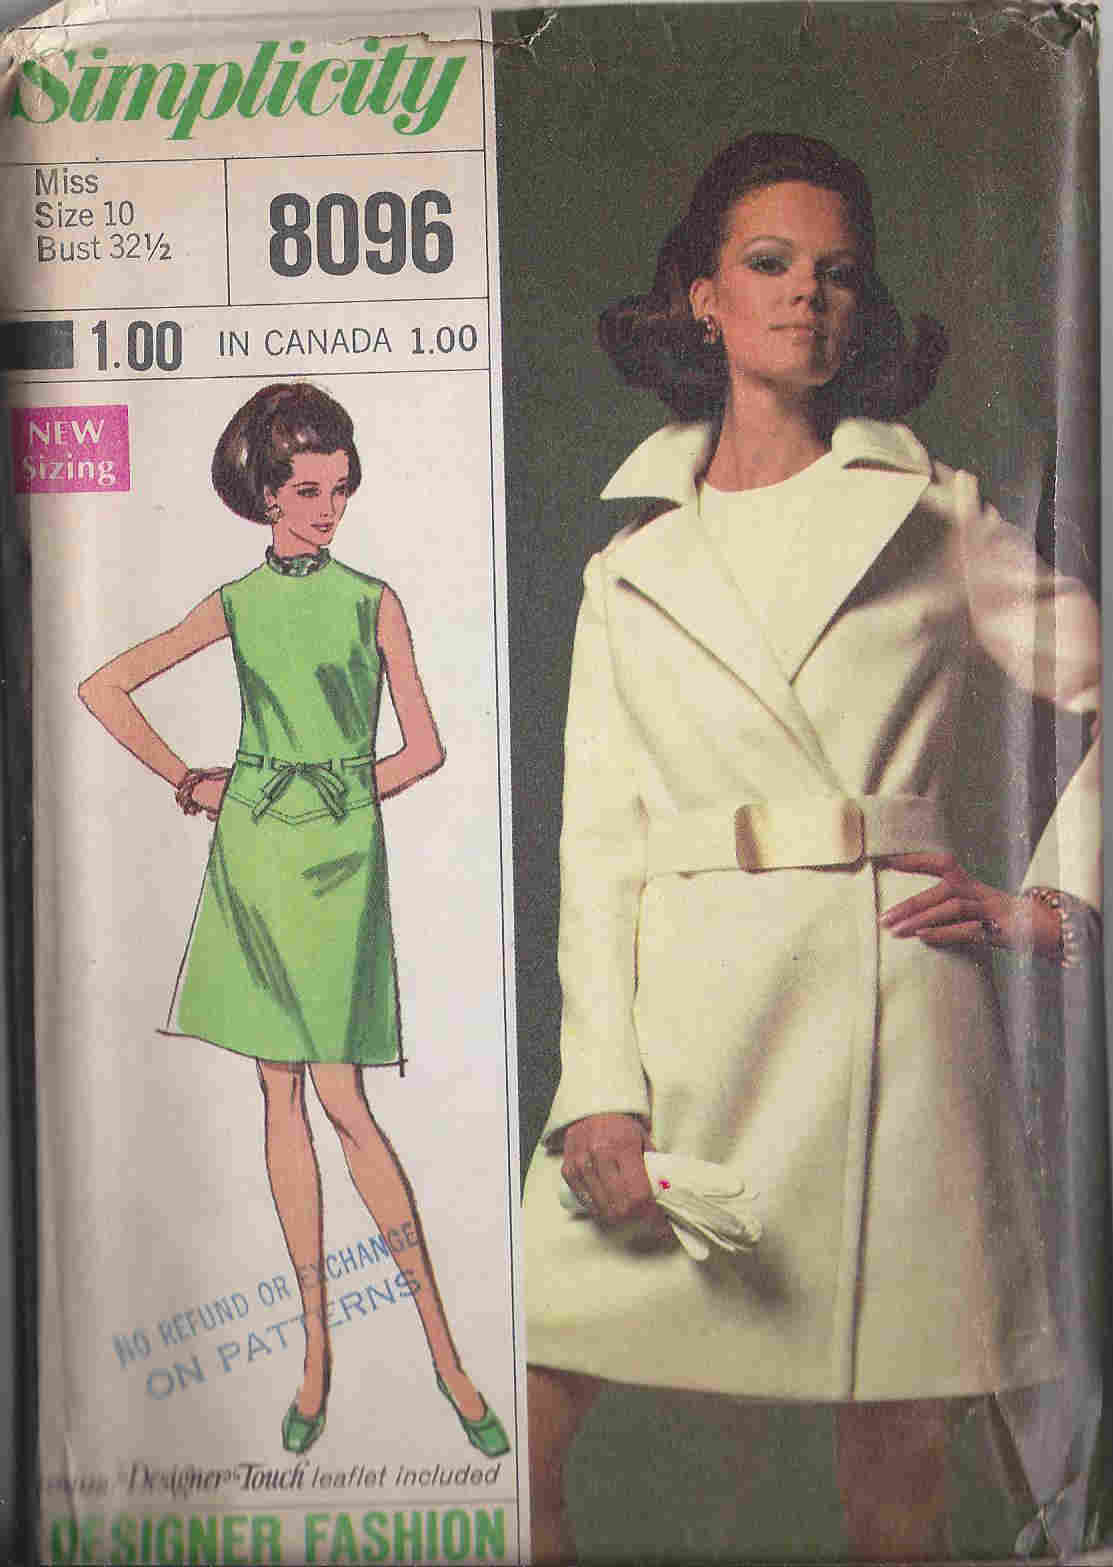 Designer Fashion dress Coat sewing pattern